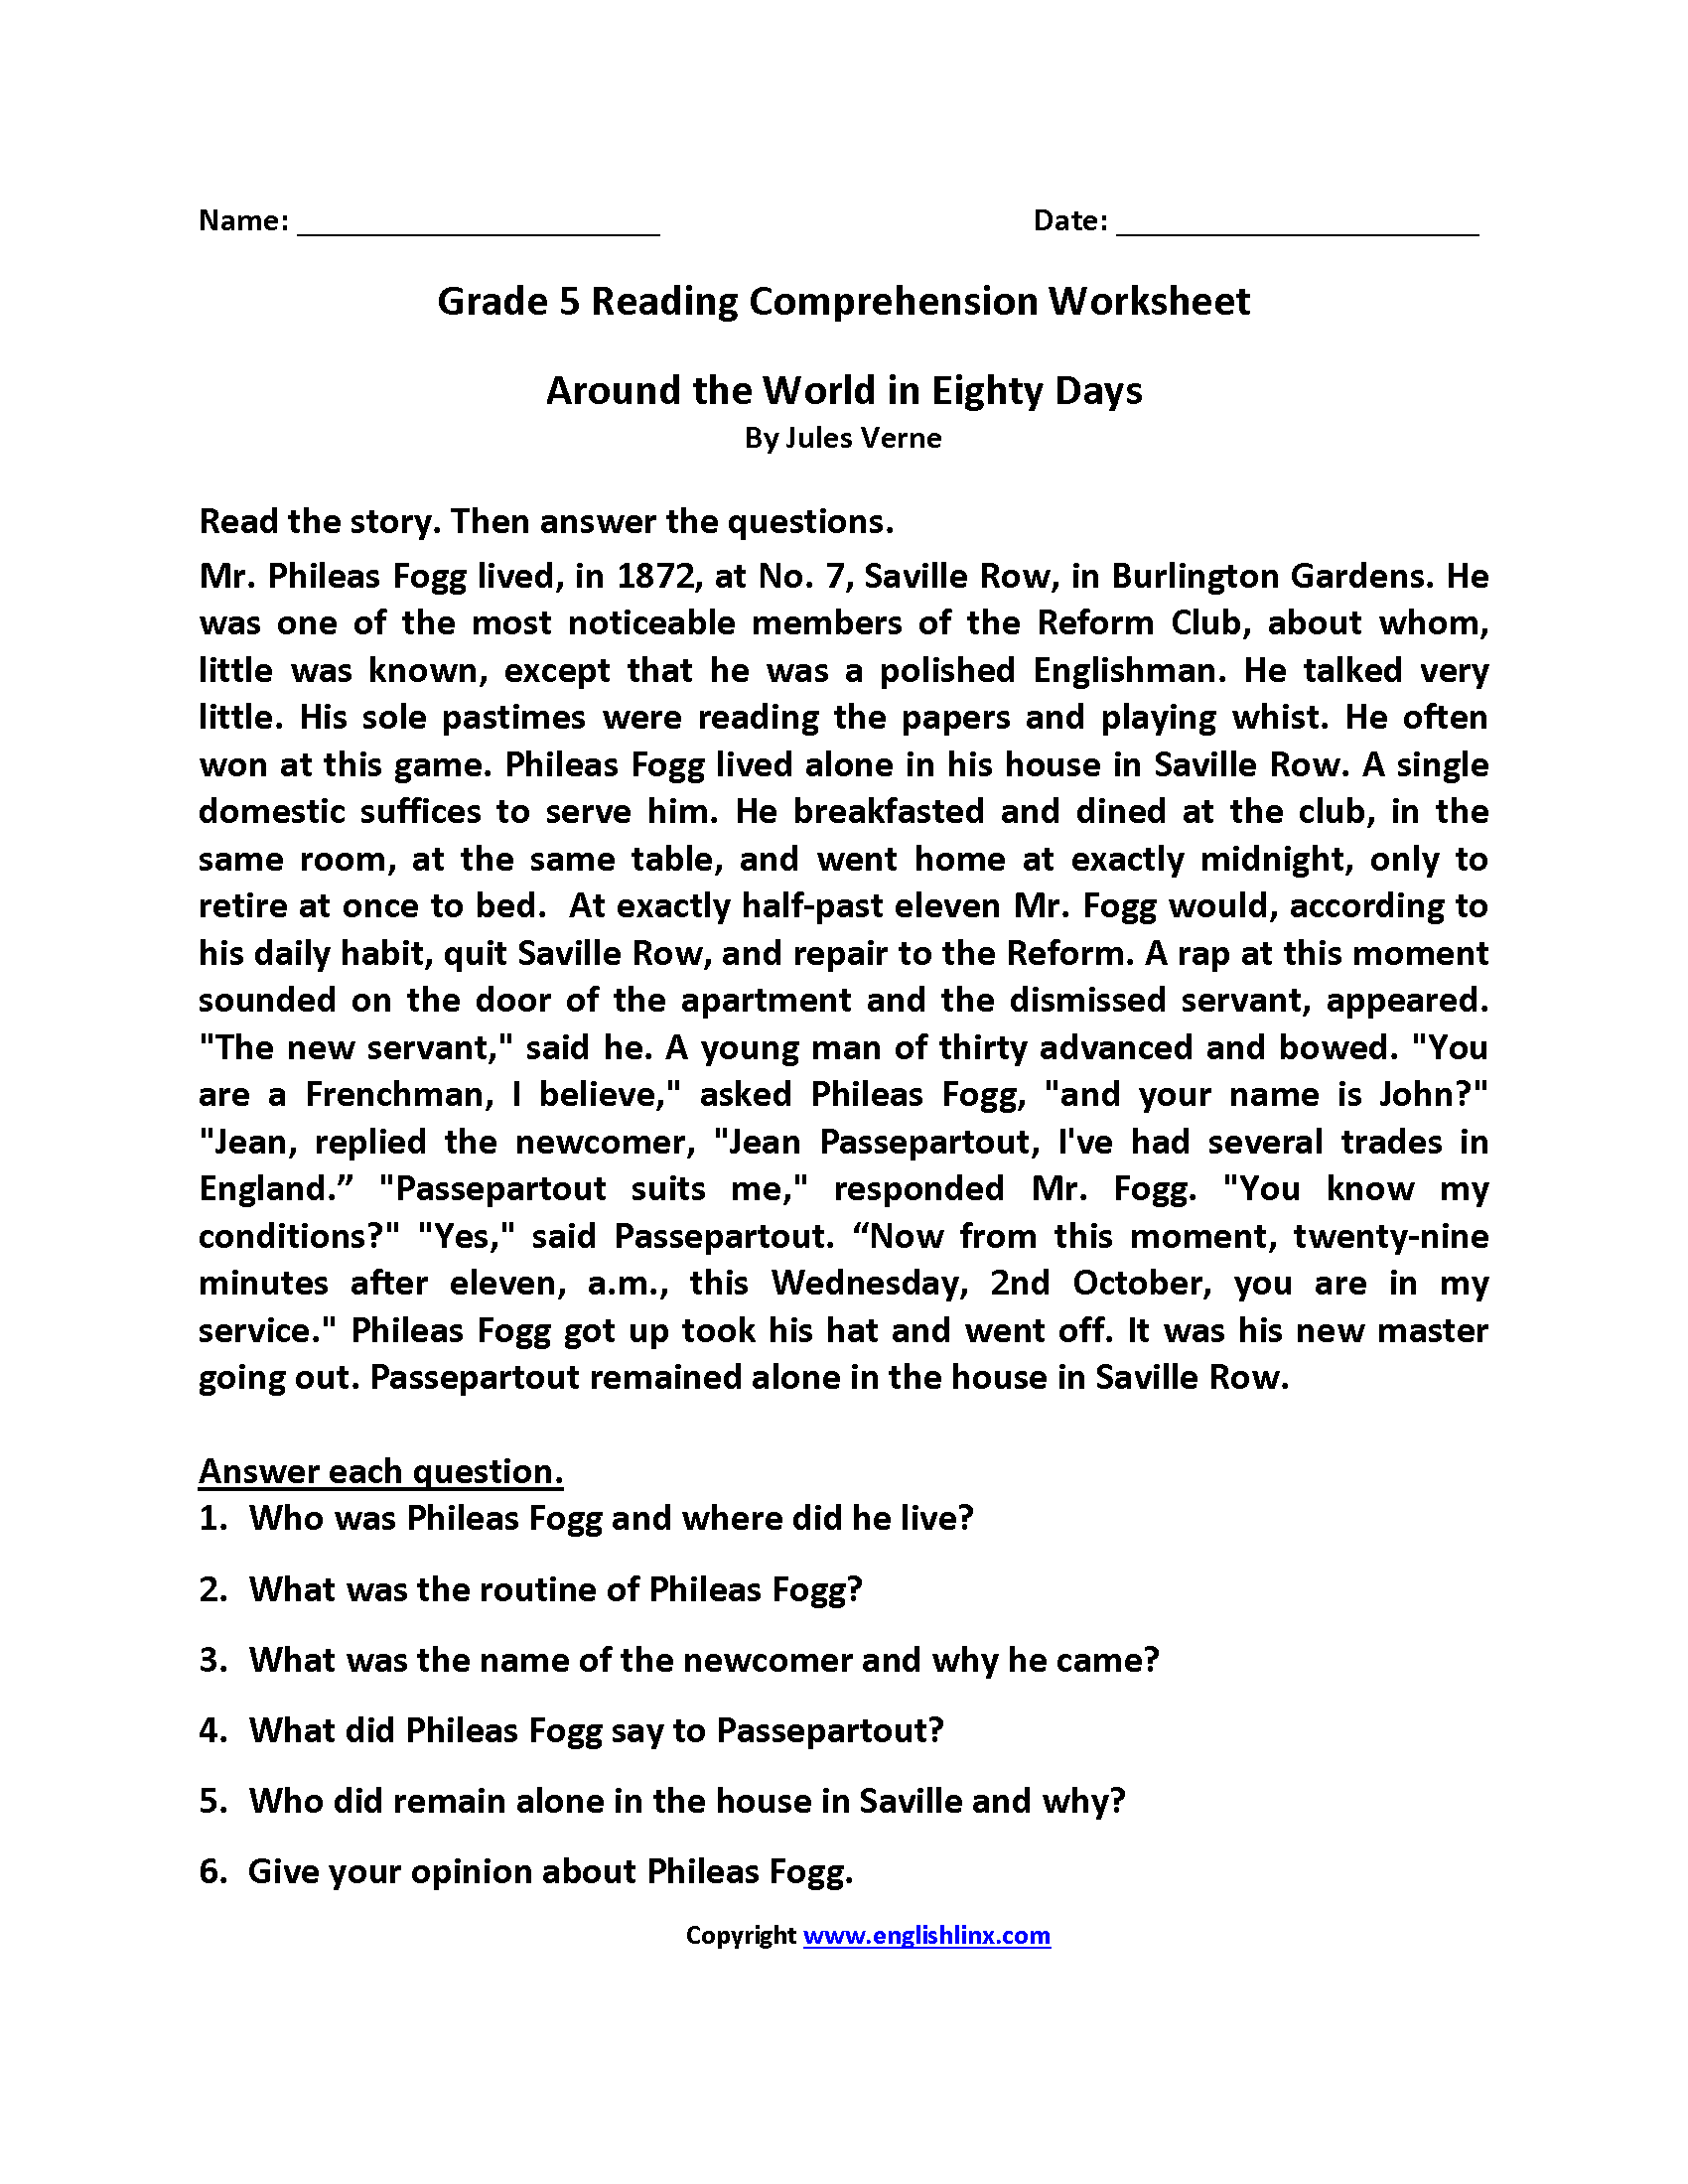 Worksheets Reading Worksheets Grade 5 reading worksheets fifth grade worksheets